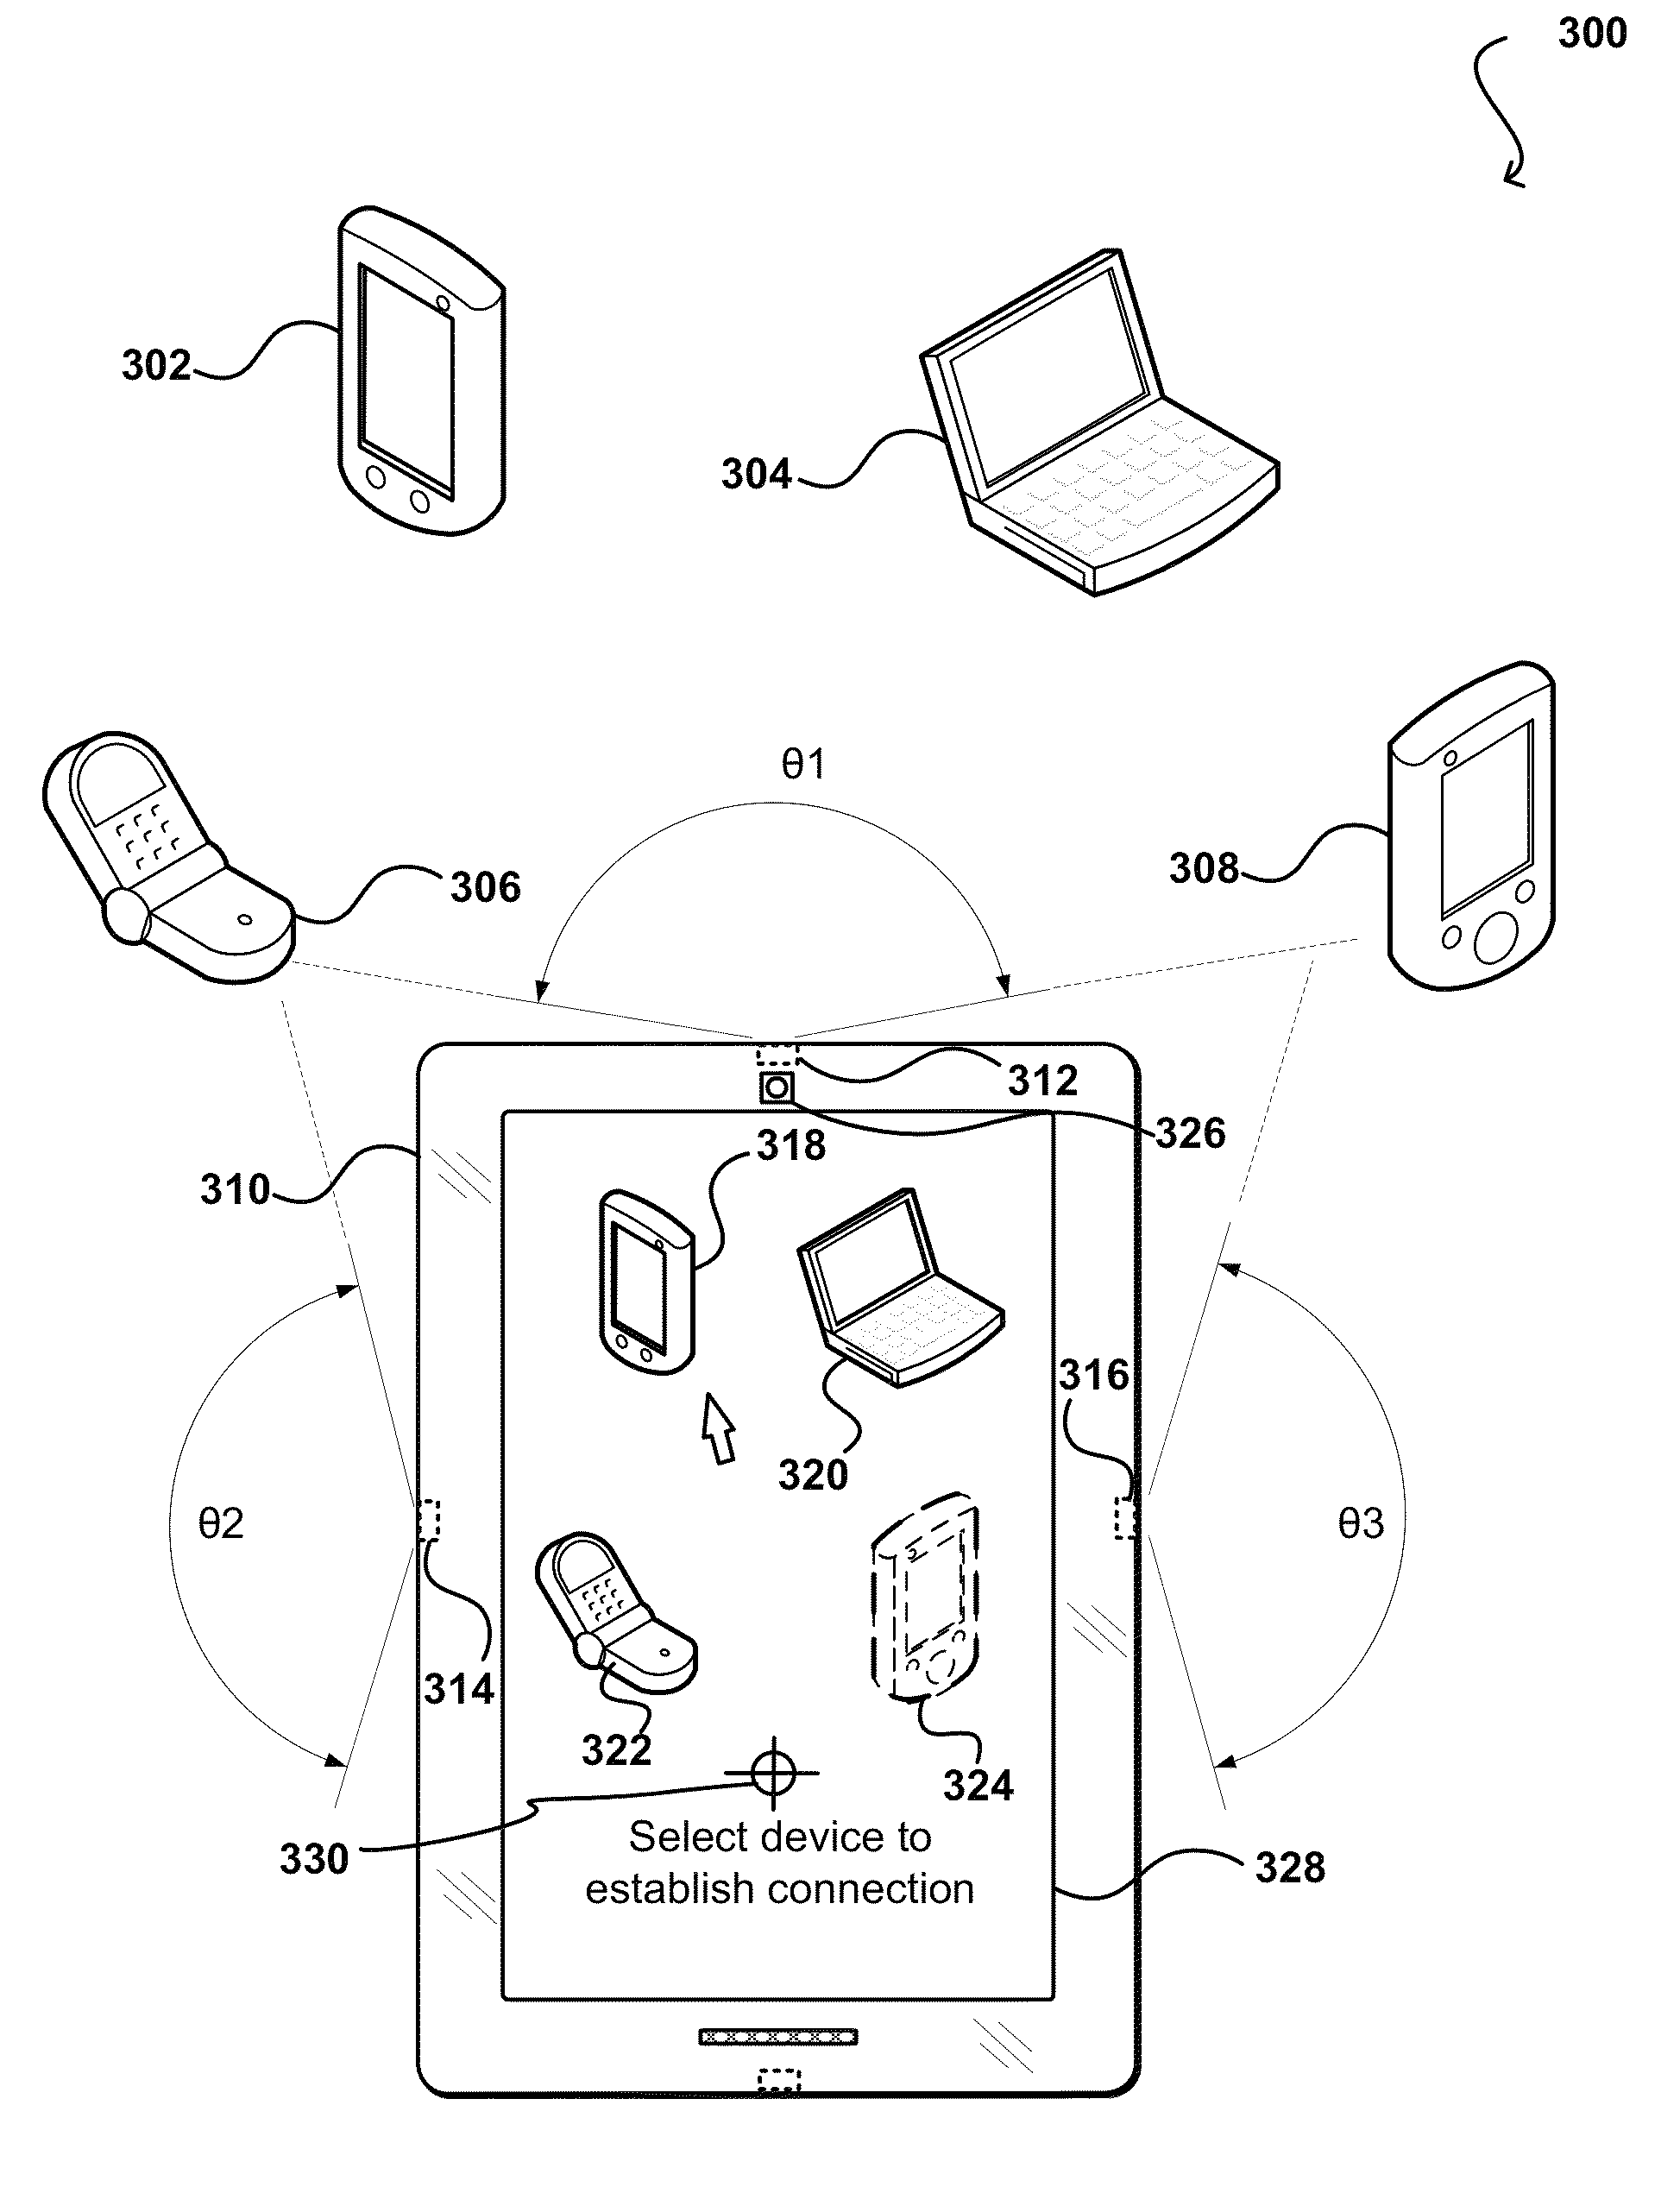 Amazon   patent by Jeff Bezos from 2013 for approaches for device location and communication - US8447070